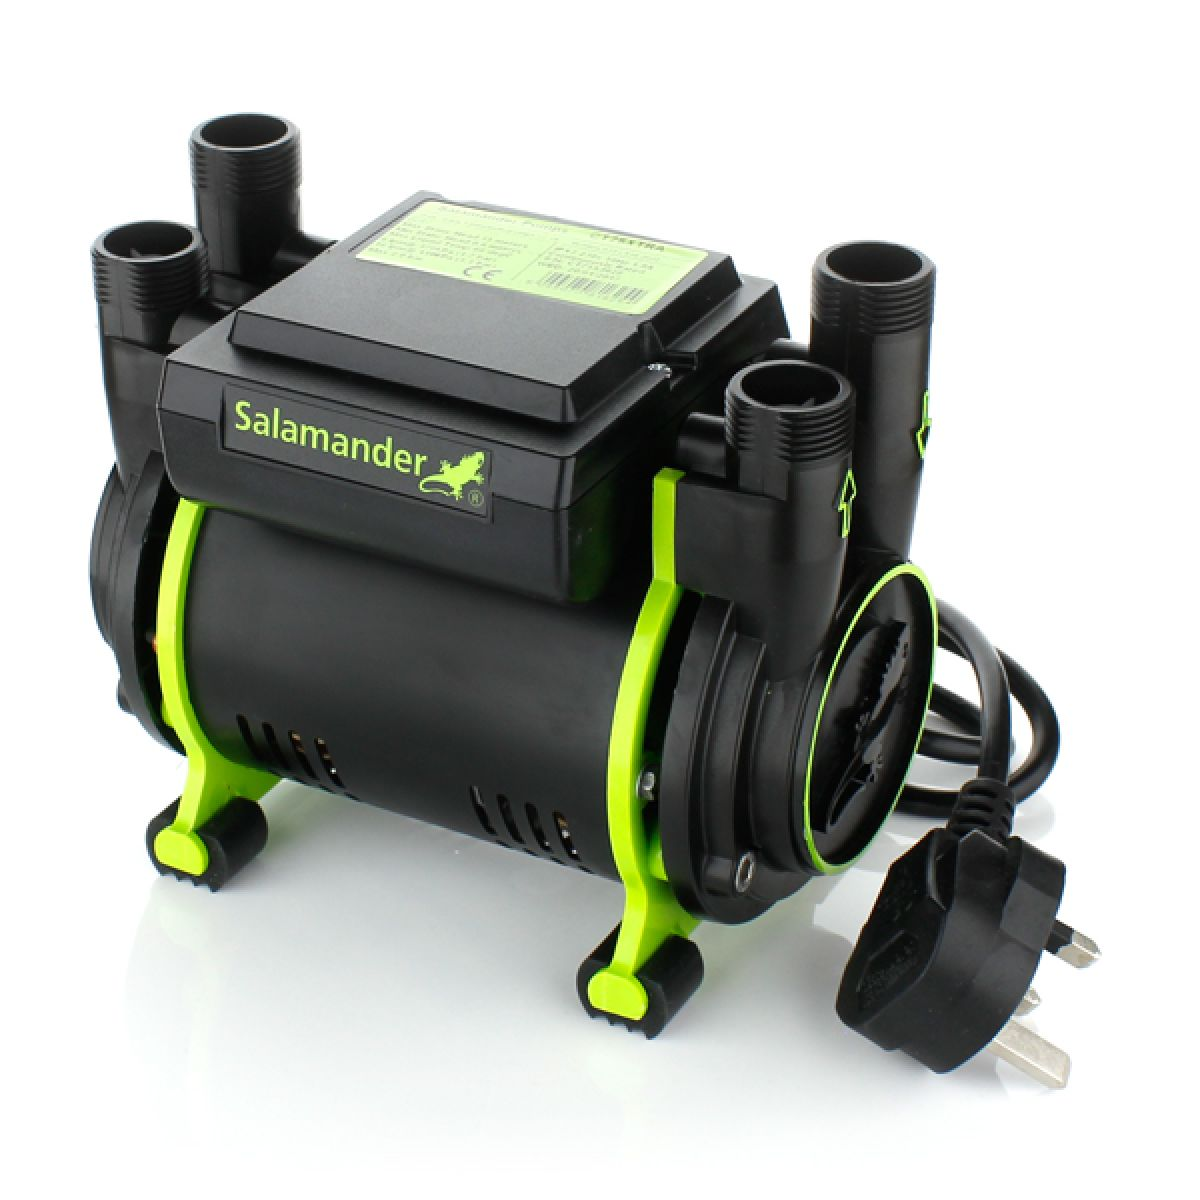 Salamander CT 75 Xtra 2.0 Bar Twin Shower Pump